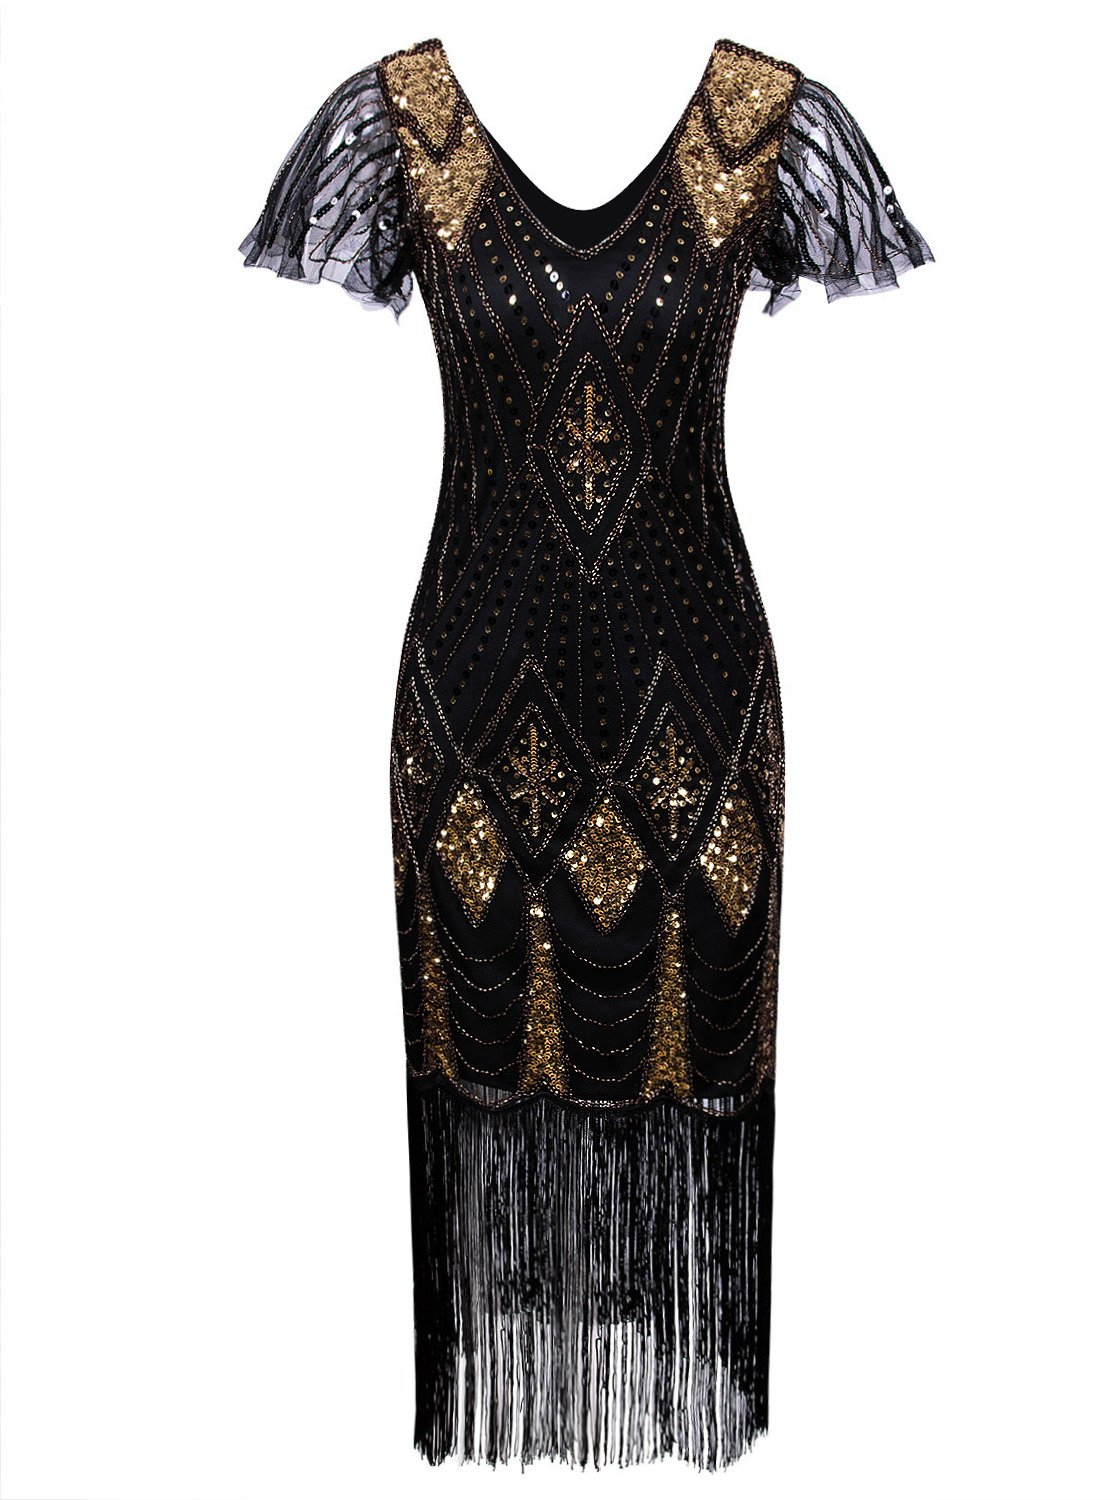 2e433a7d06fe Vijiv Women Vintage Style 1920s Dresses Inspired Beaded Cocktail Flapper  Dress With Sleeves For Prom Gatsby Party,Black Gold,Small